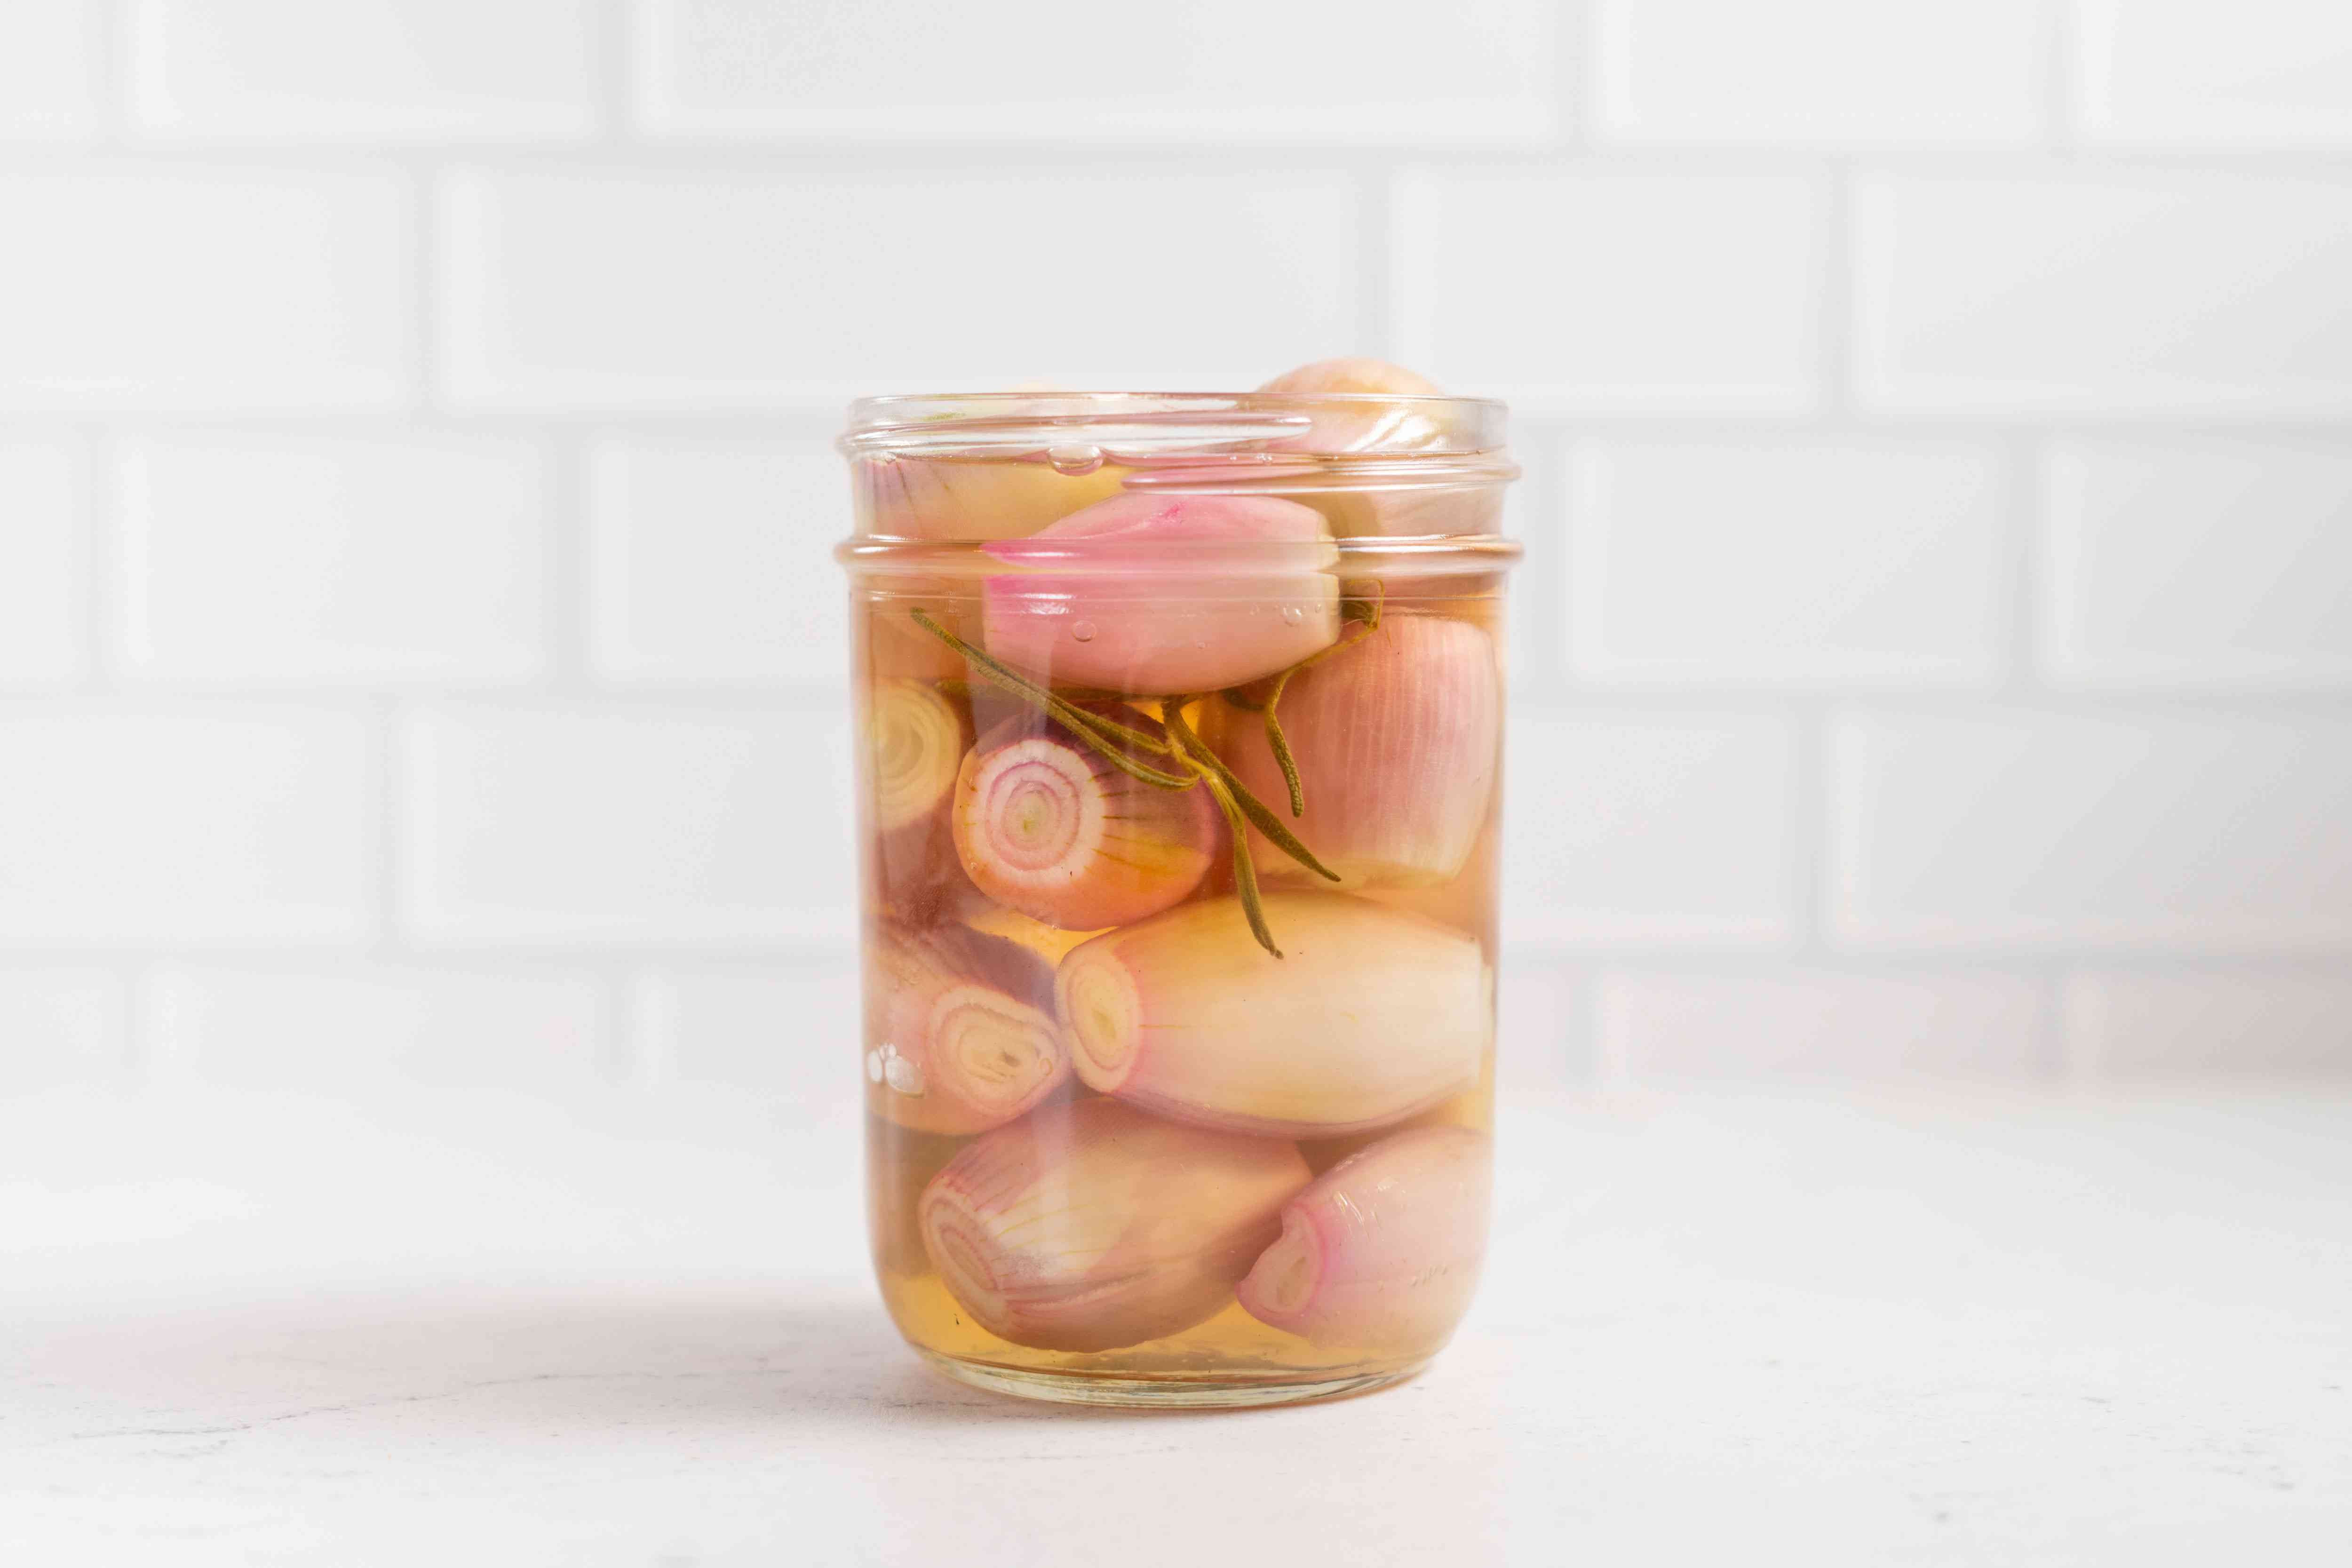 Pickled Shallots in a jar